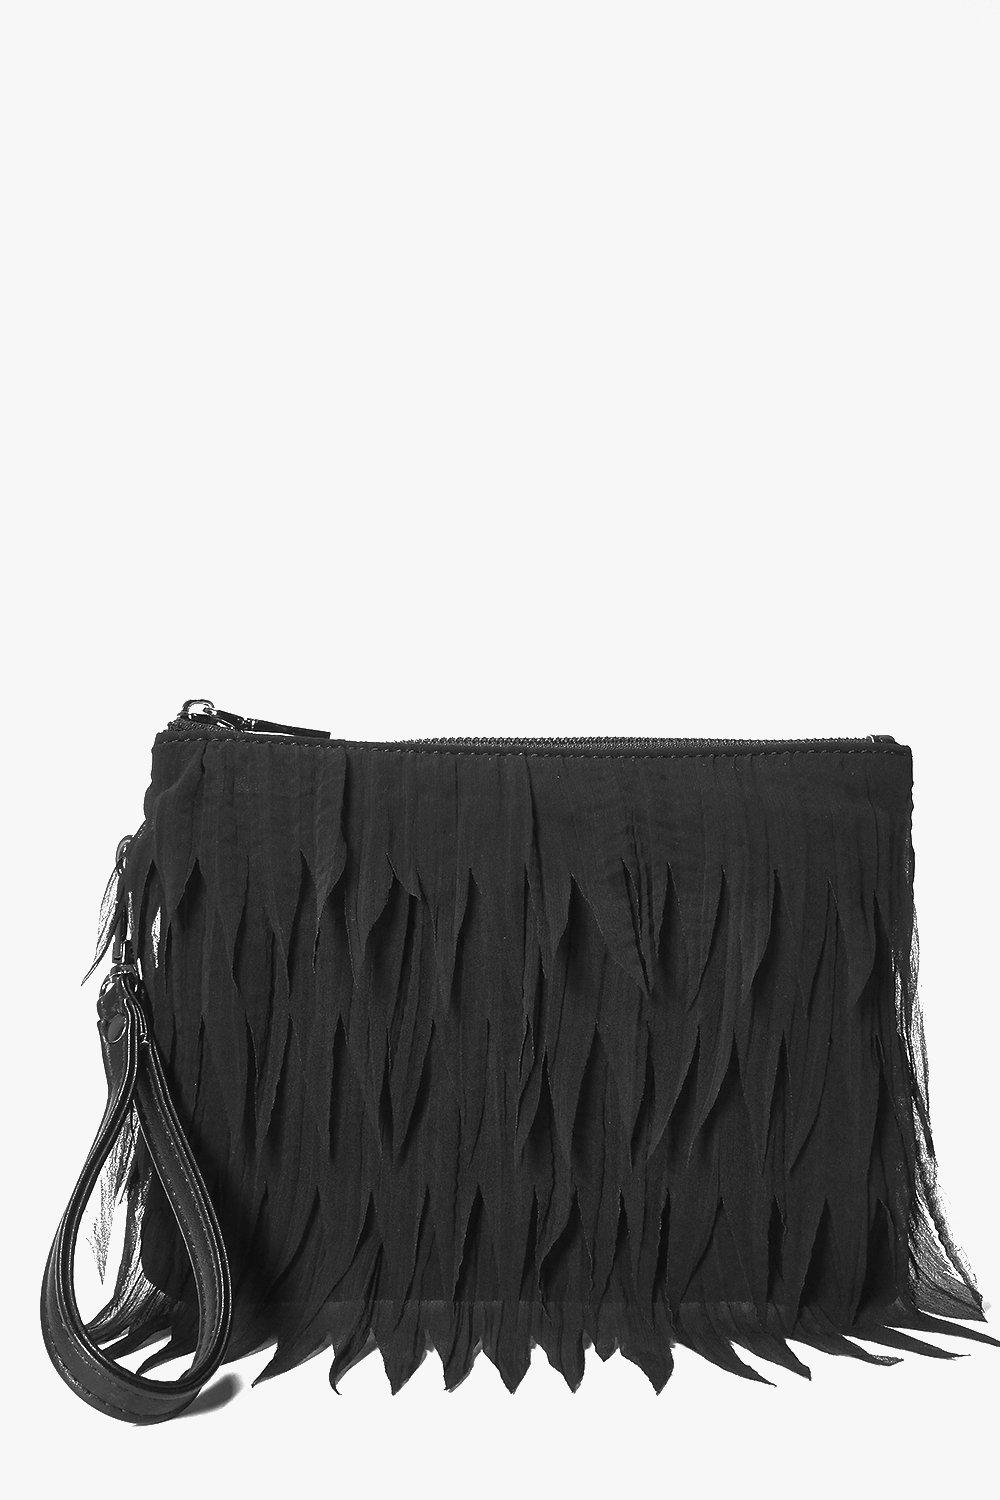 Chiffon Fringed Clutch Bag black